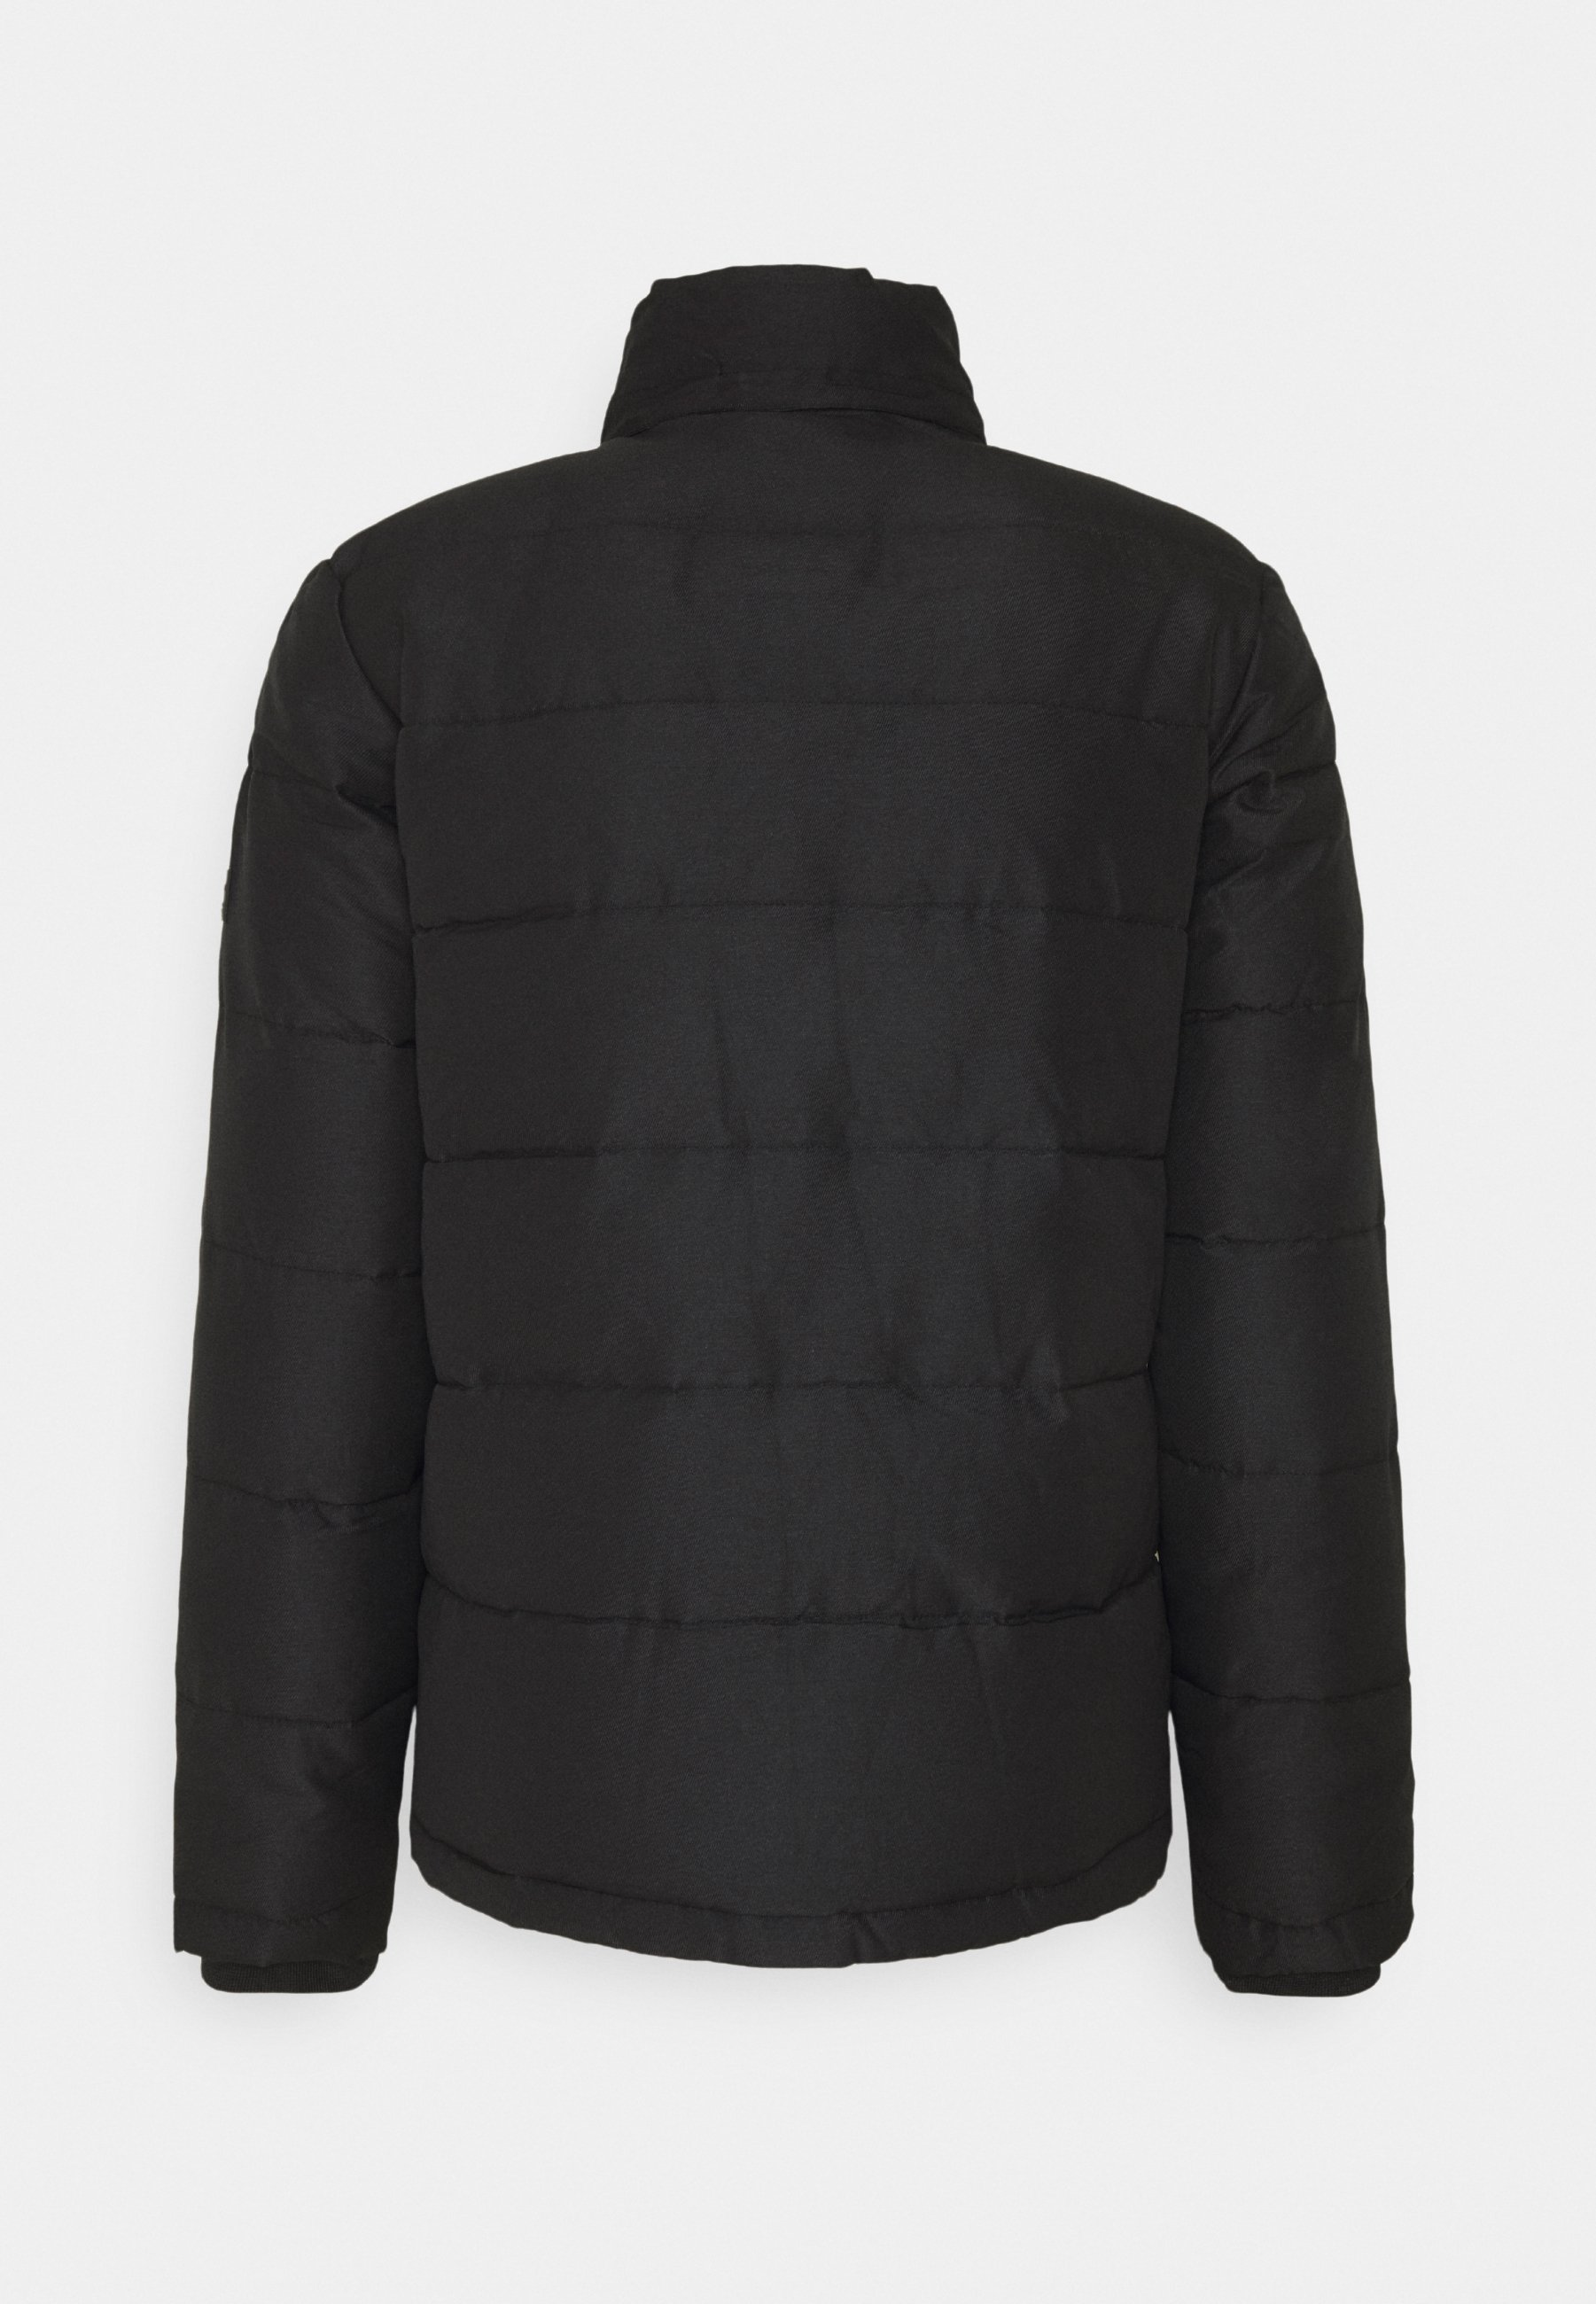 Clean And Classic Cheapest Men's Clothing Jack & Jones JJREGAN PUFFER Winter jacket black IZAAzYArw b18q3EQGN